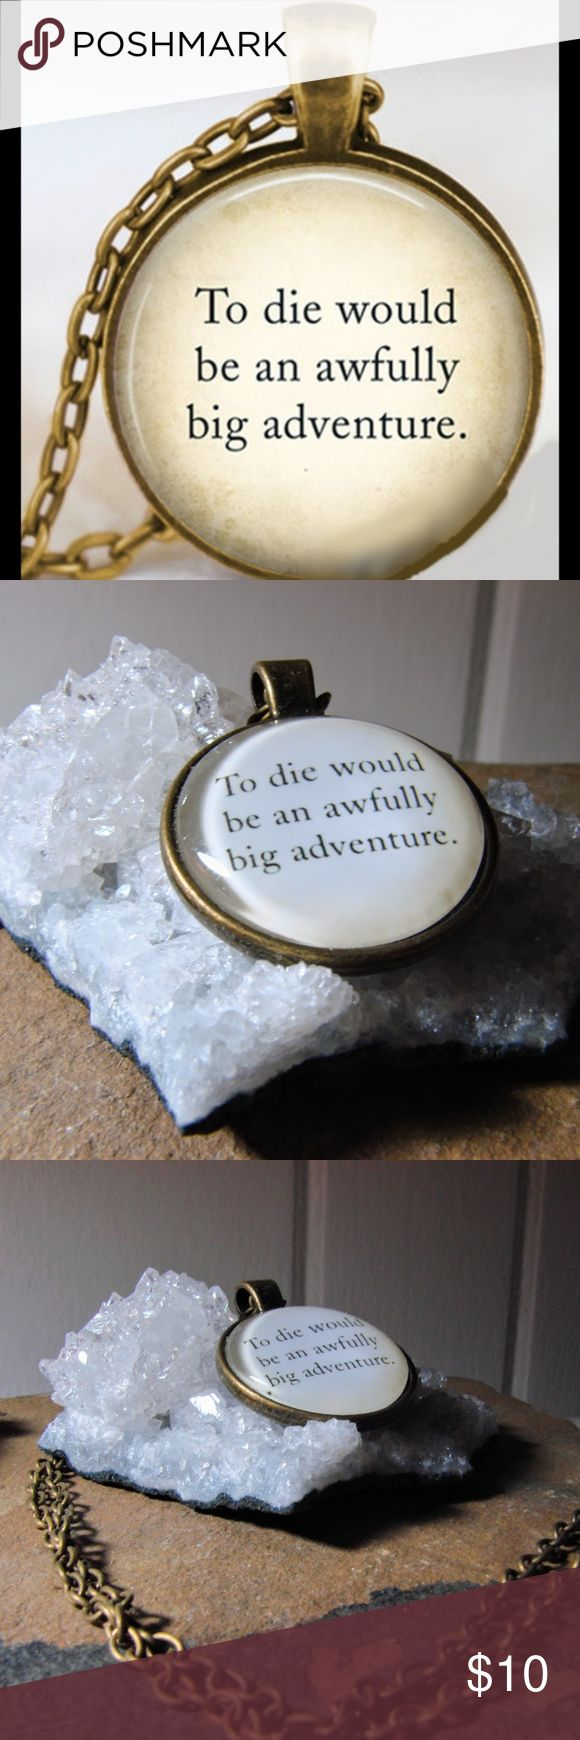 "To die would be an awfully big adventure necklace ""To die would be an awfully big adventure"" necklace originally quoted by Peter Pan in the novel by J.M. Barrie. Bronze pendant necklace on a 20 inch chain.  a reminder that death is not the end, just a new beginning. Jewelry Necklaces"